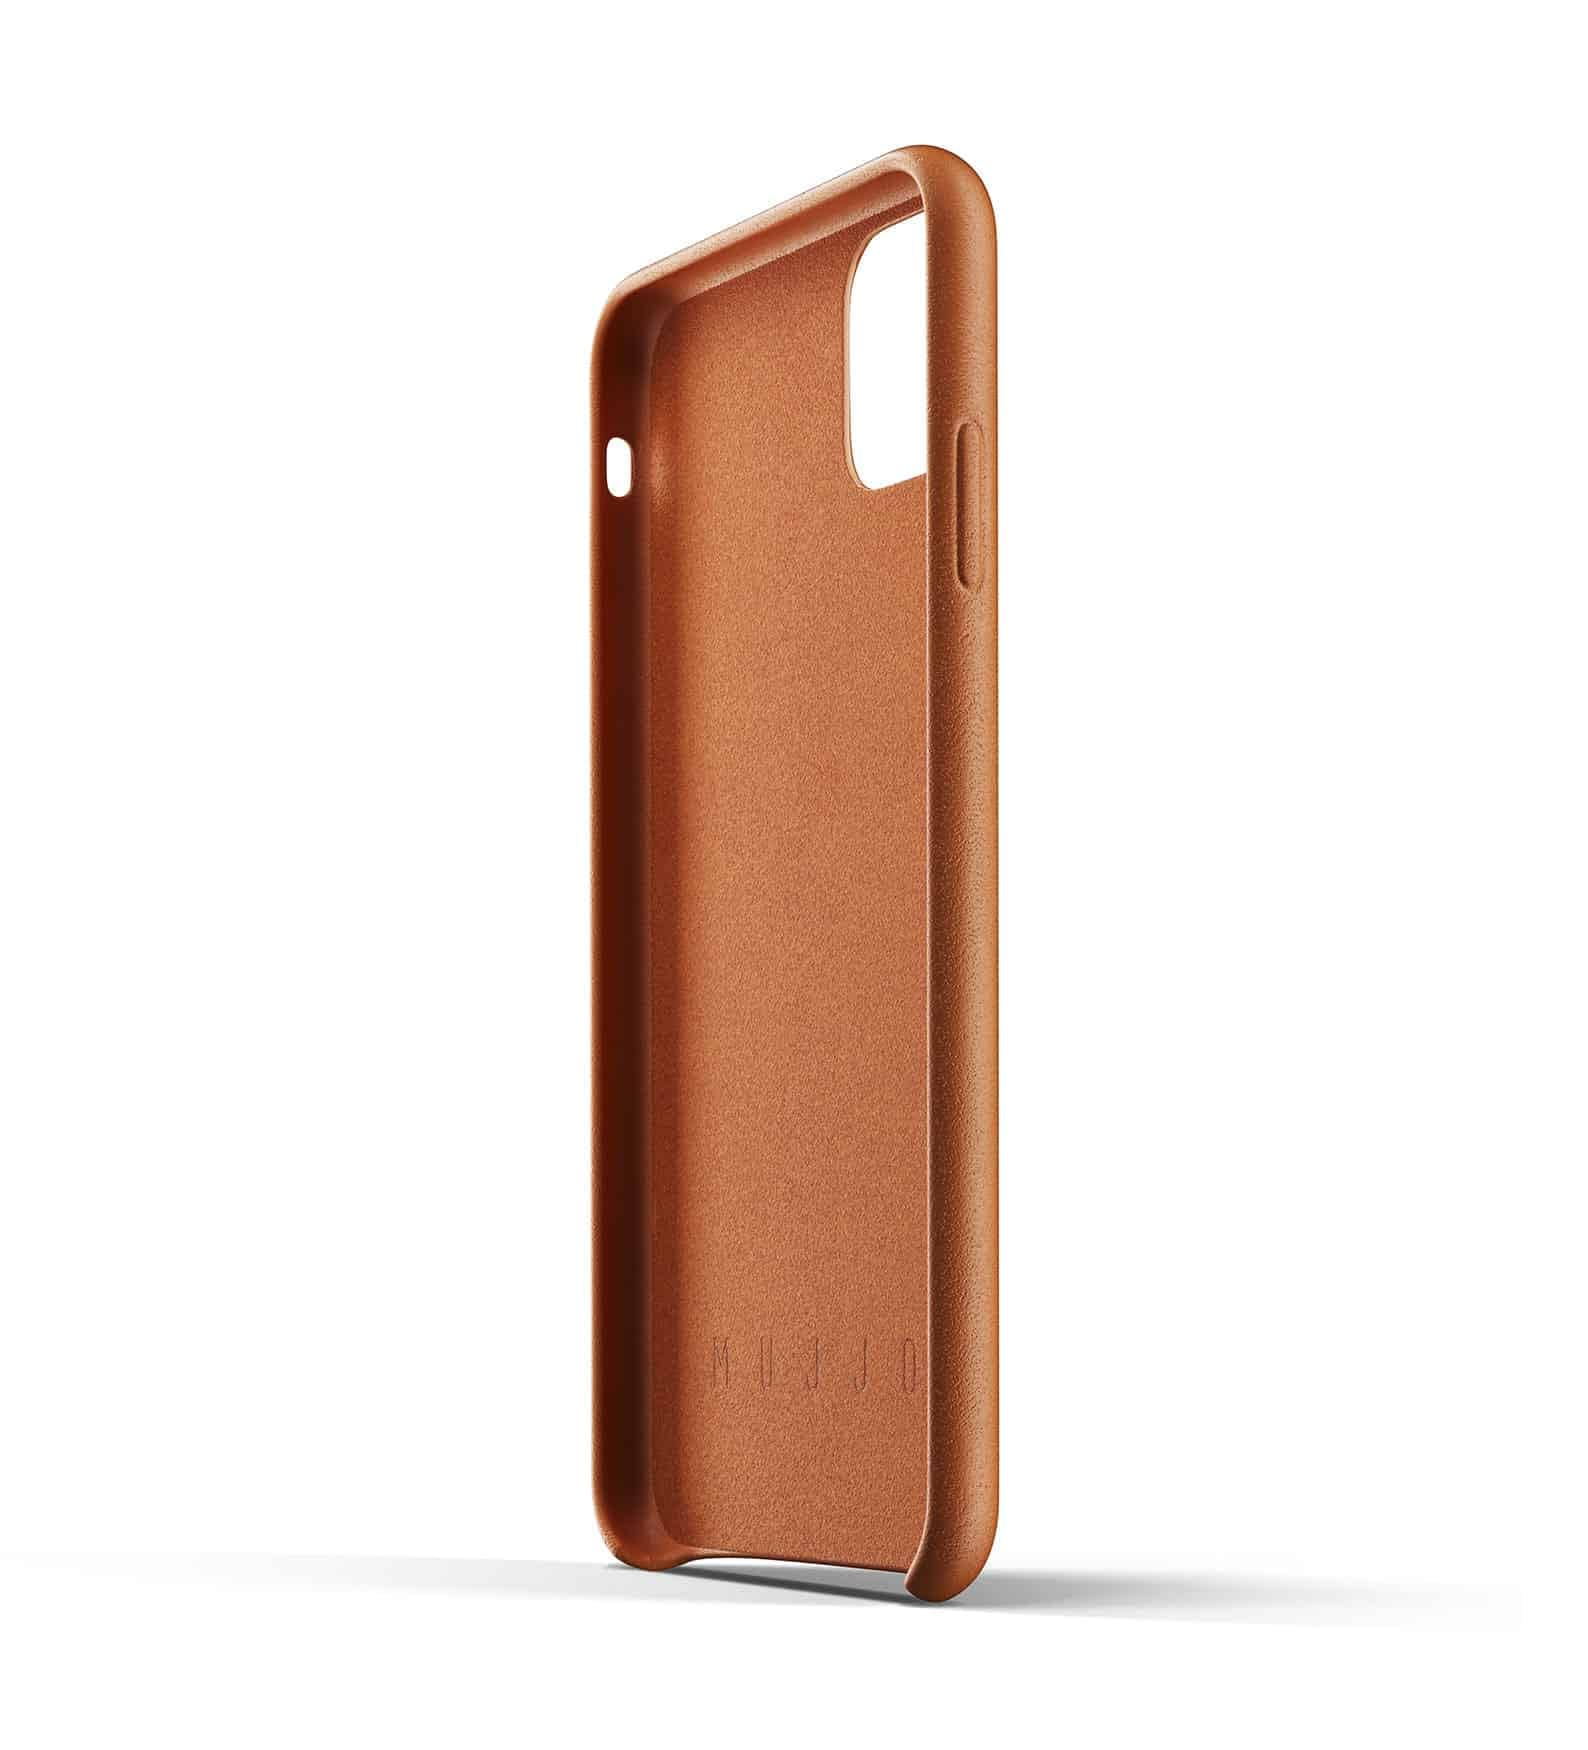 Full leather case for iPhone 11 Pro Max Tan Thumbnail 05